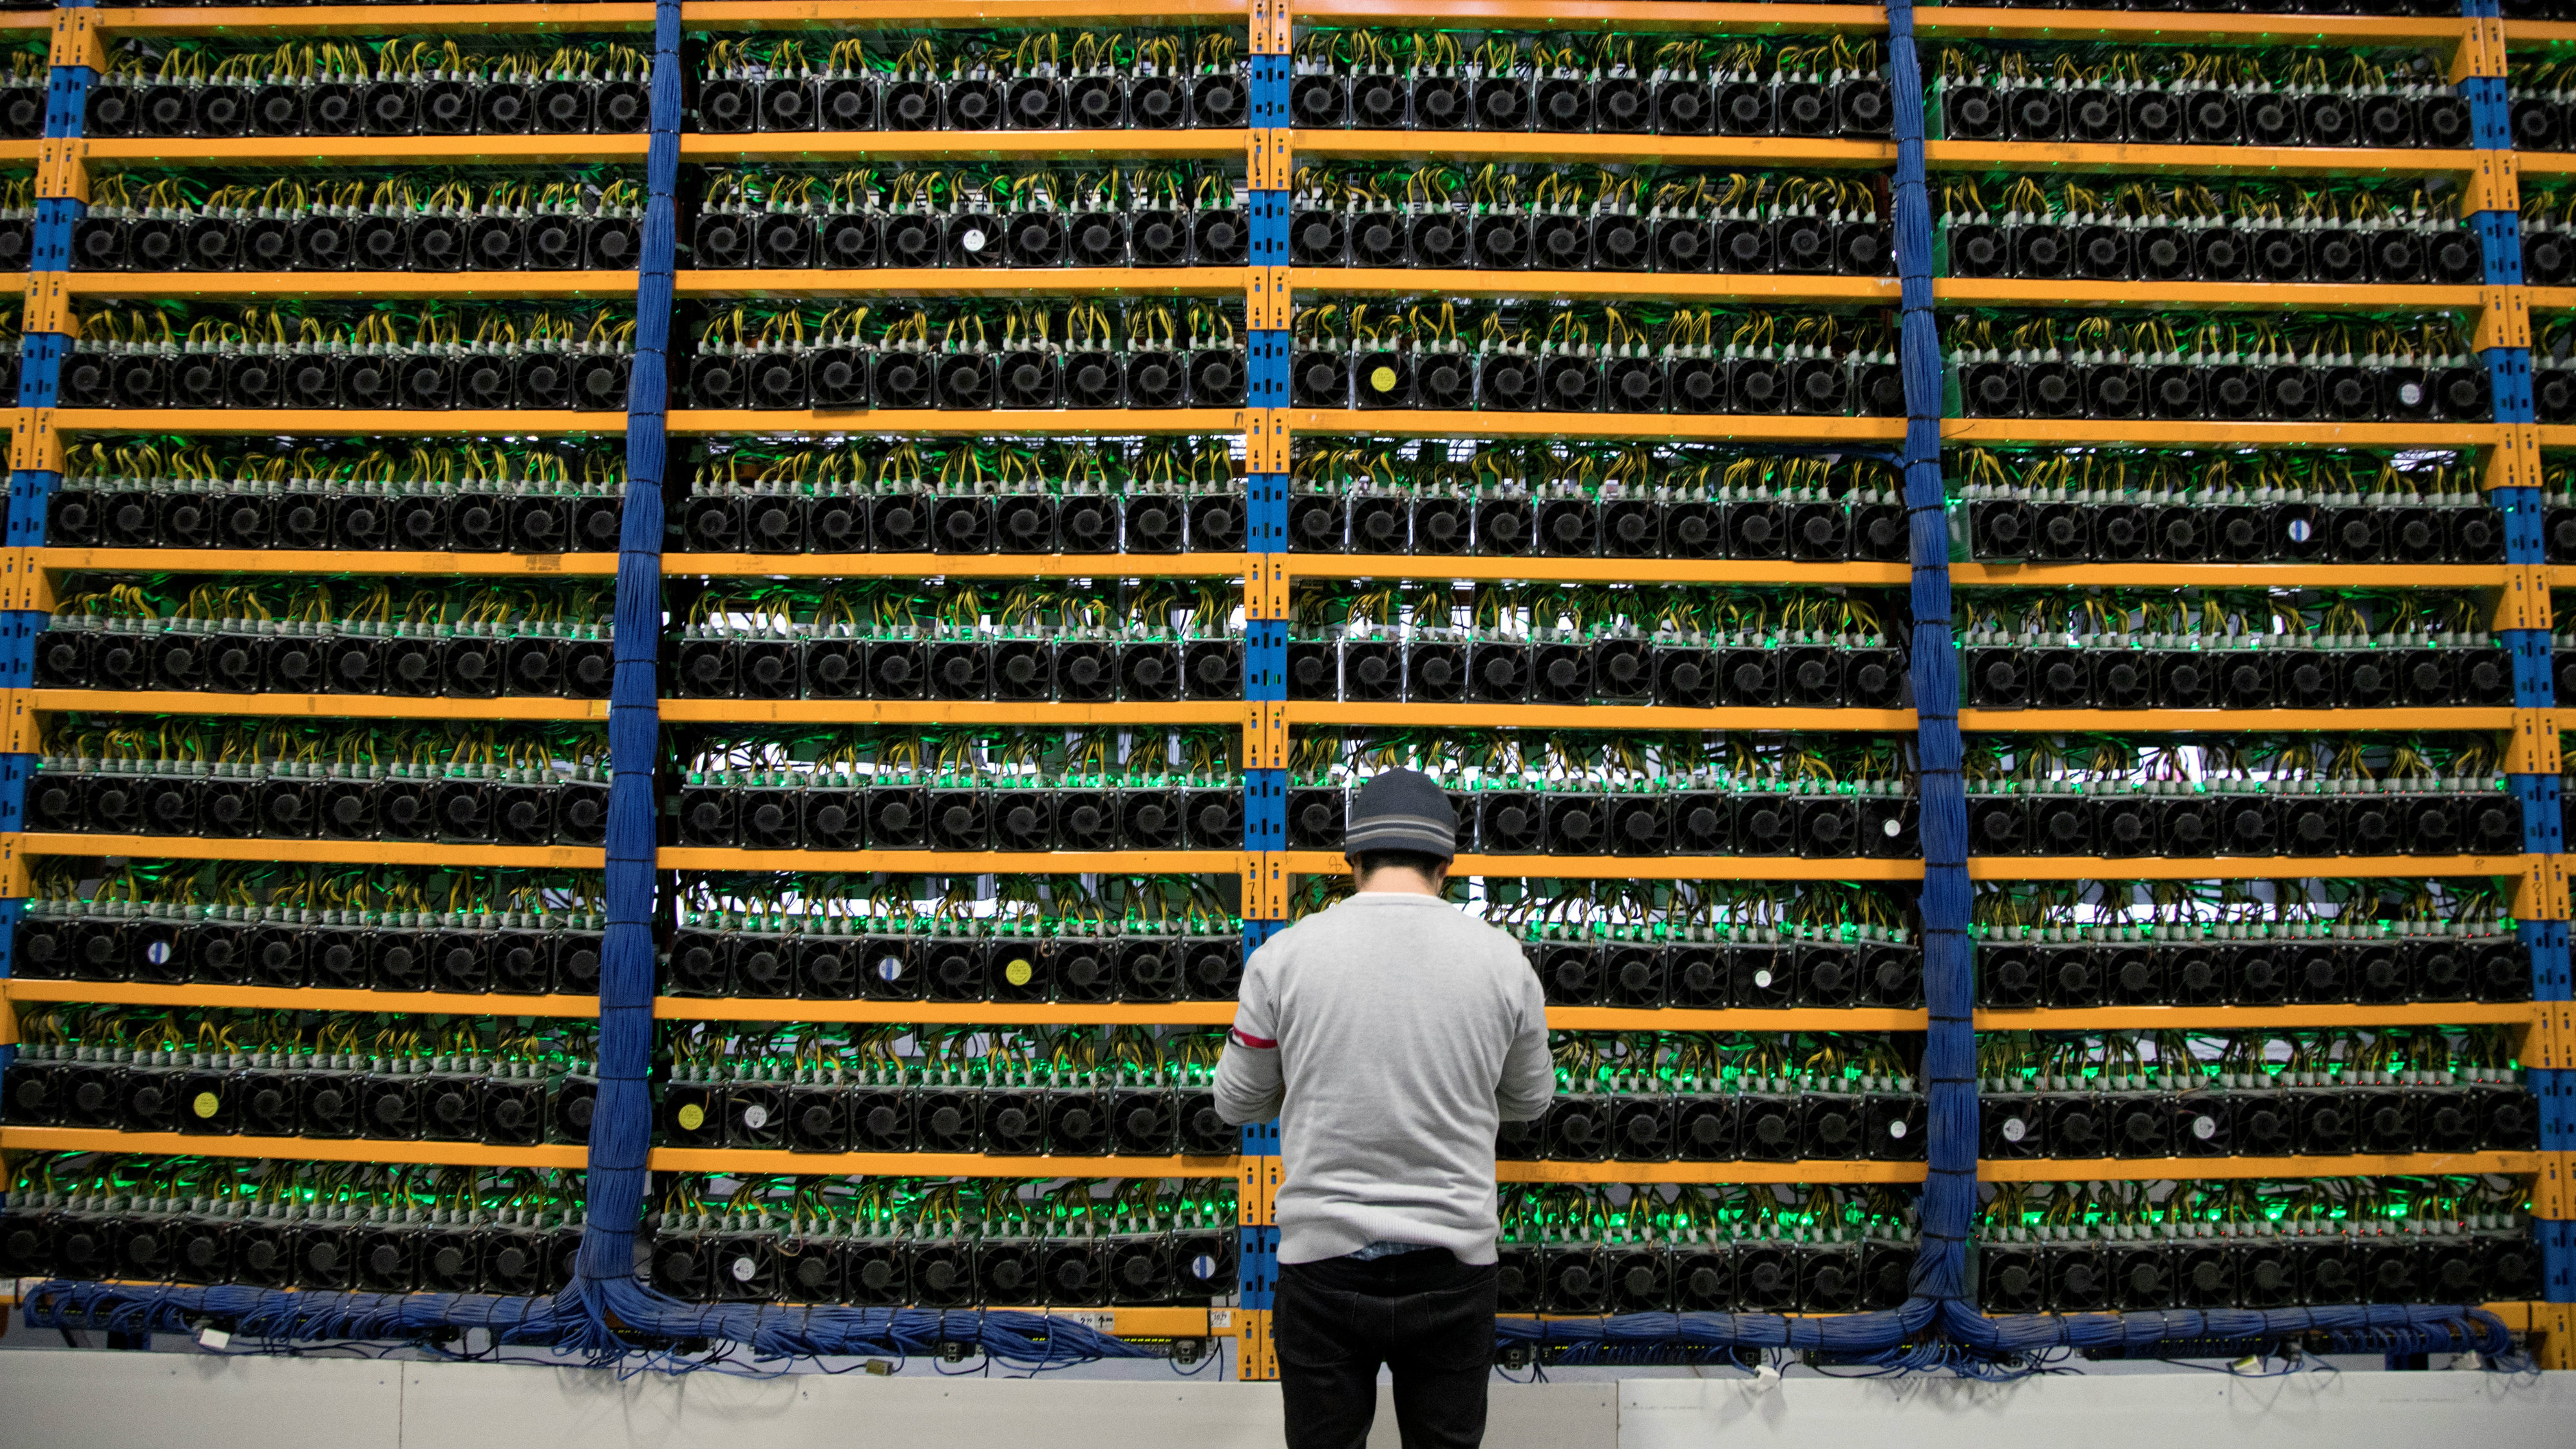 A worker checks the fans on miners, at the cryptocurrency farming operation, Bitfarms, in Farnham, Quebec, Canada, February 2, 2018.